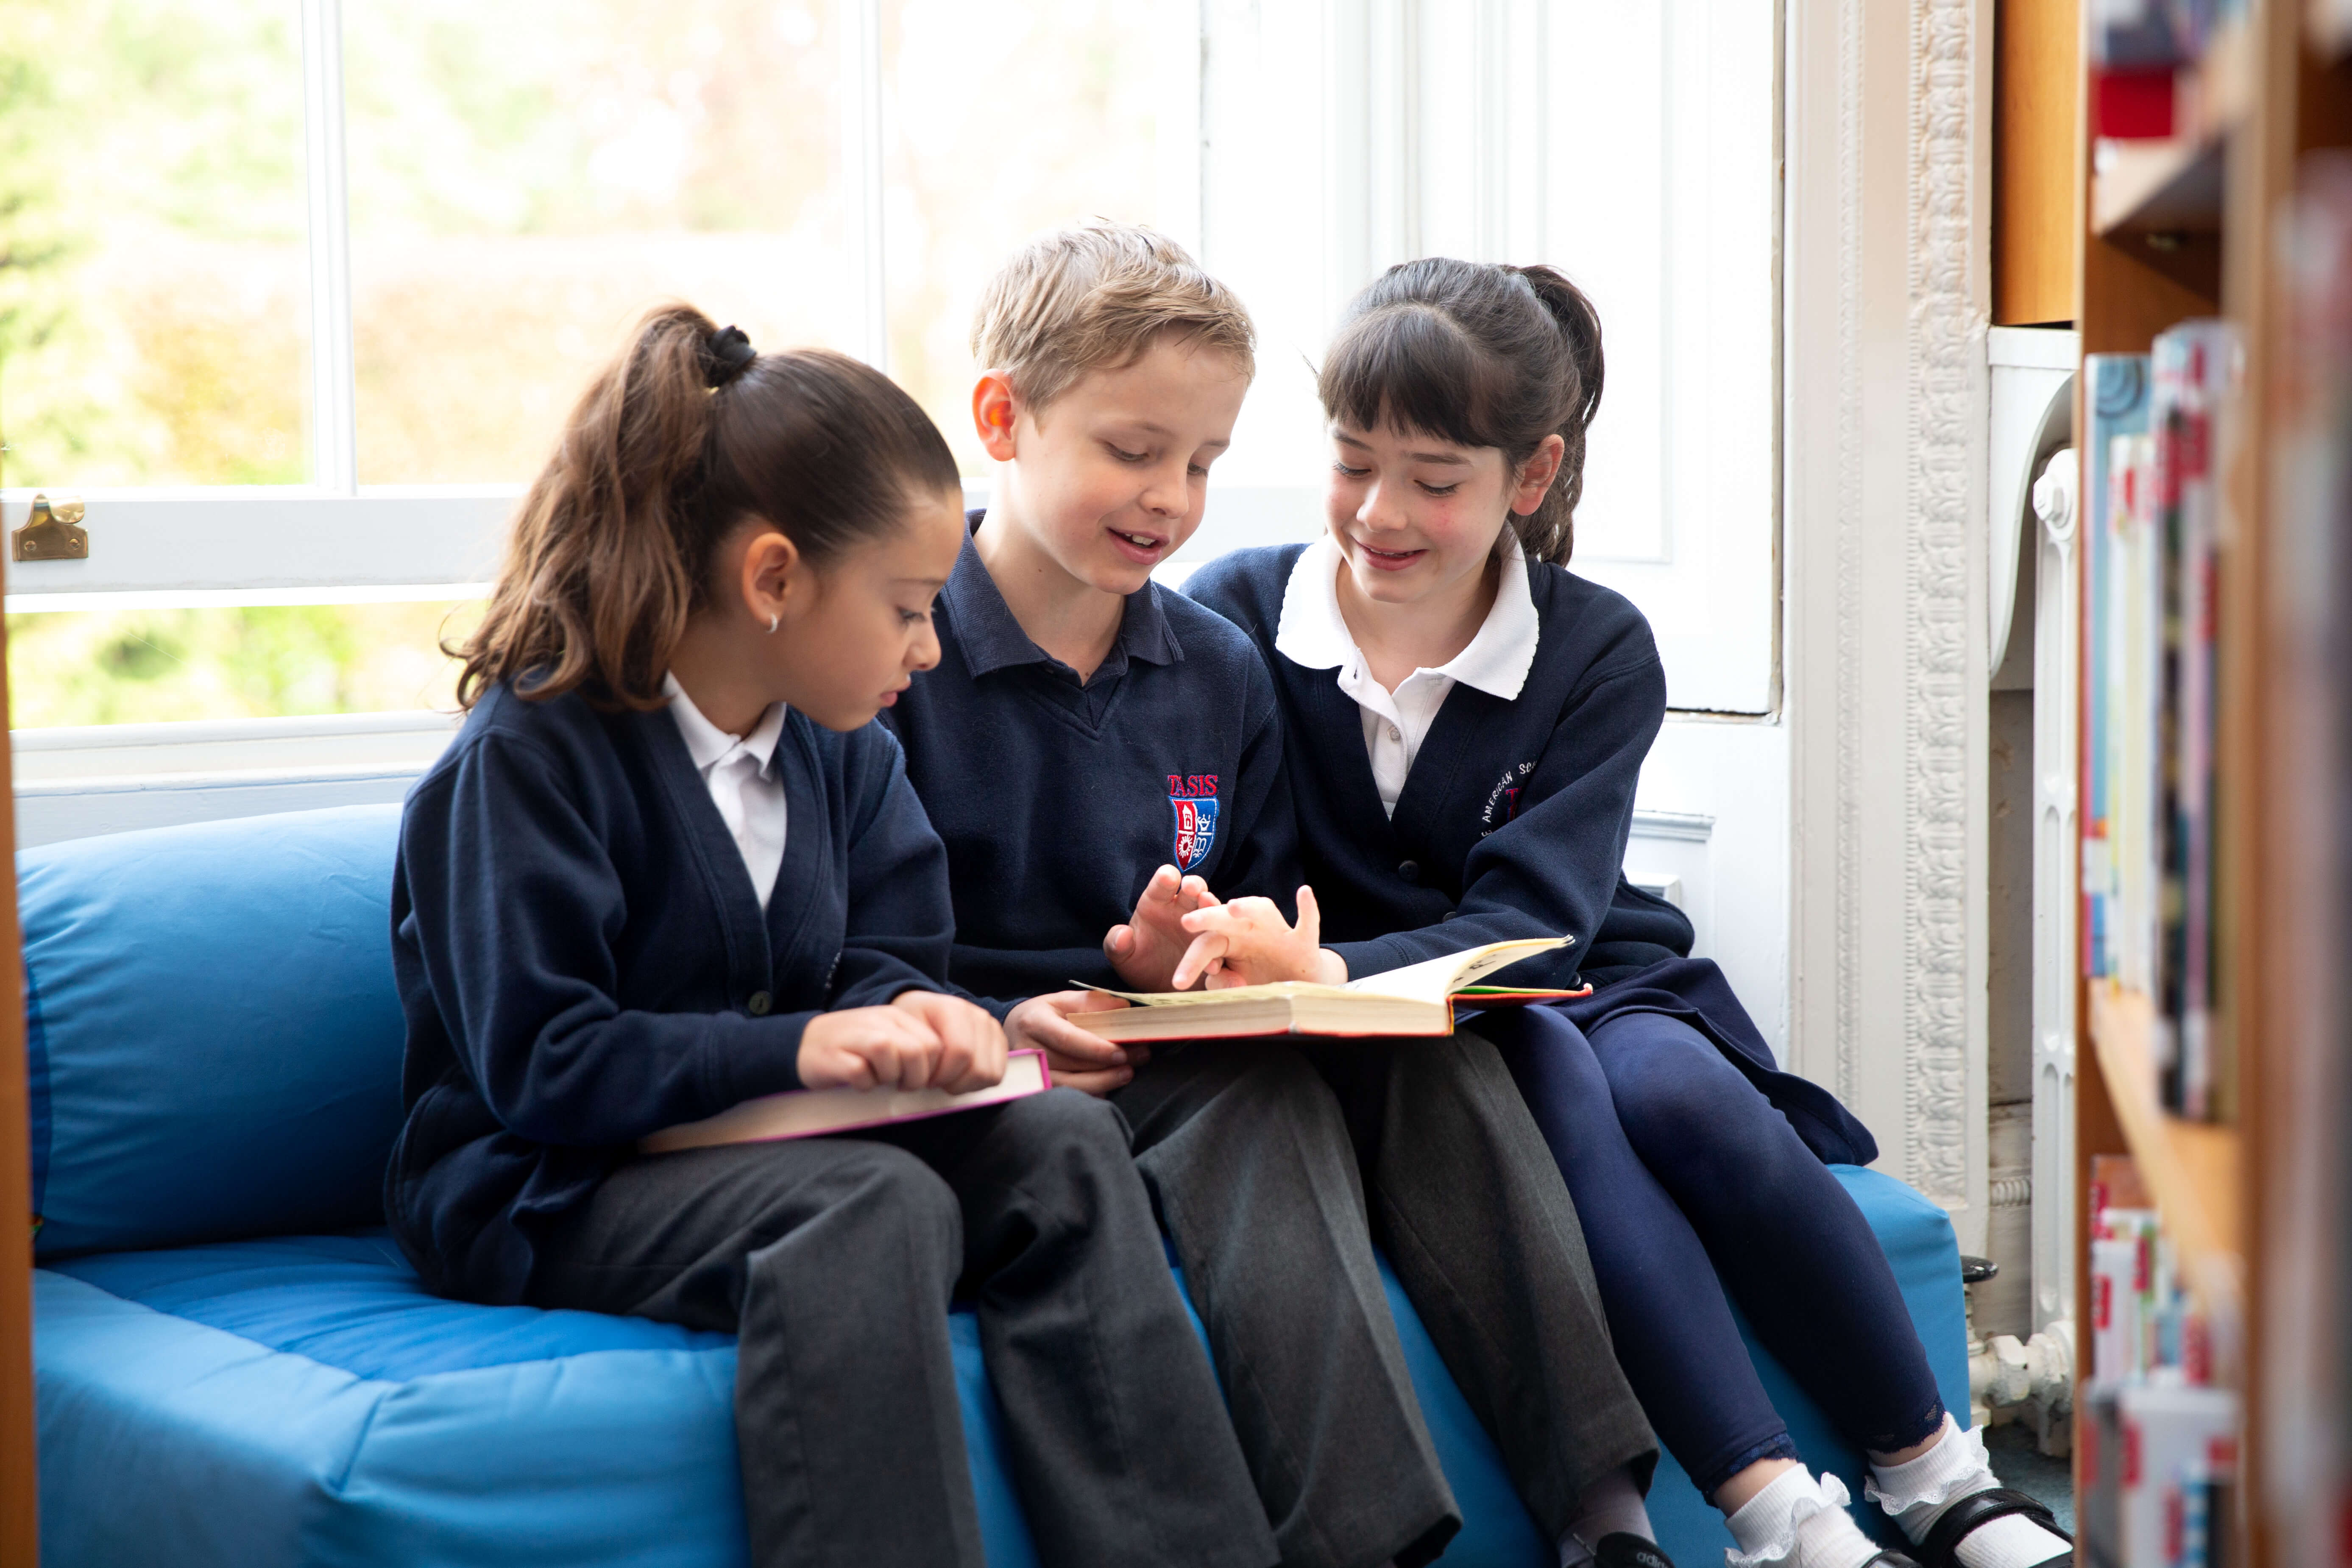 Build character and foster excellence at these UK schools